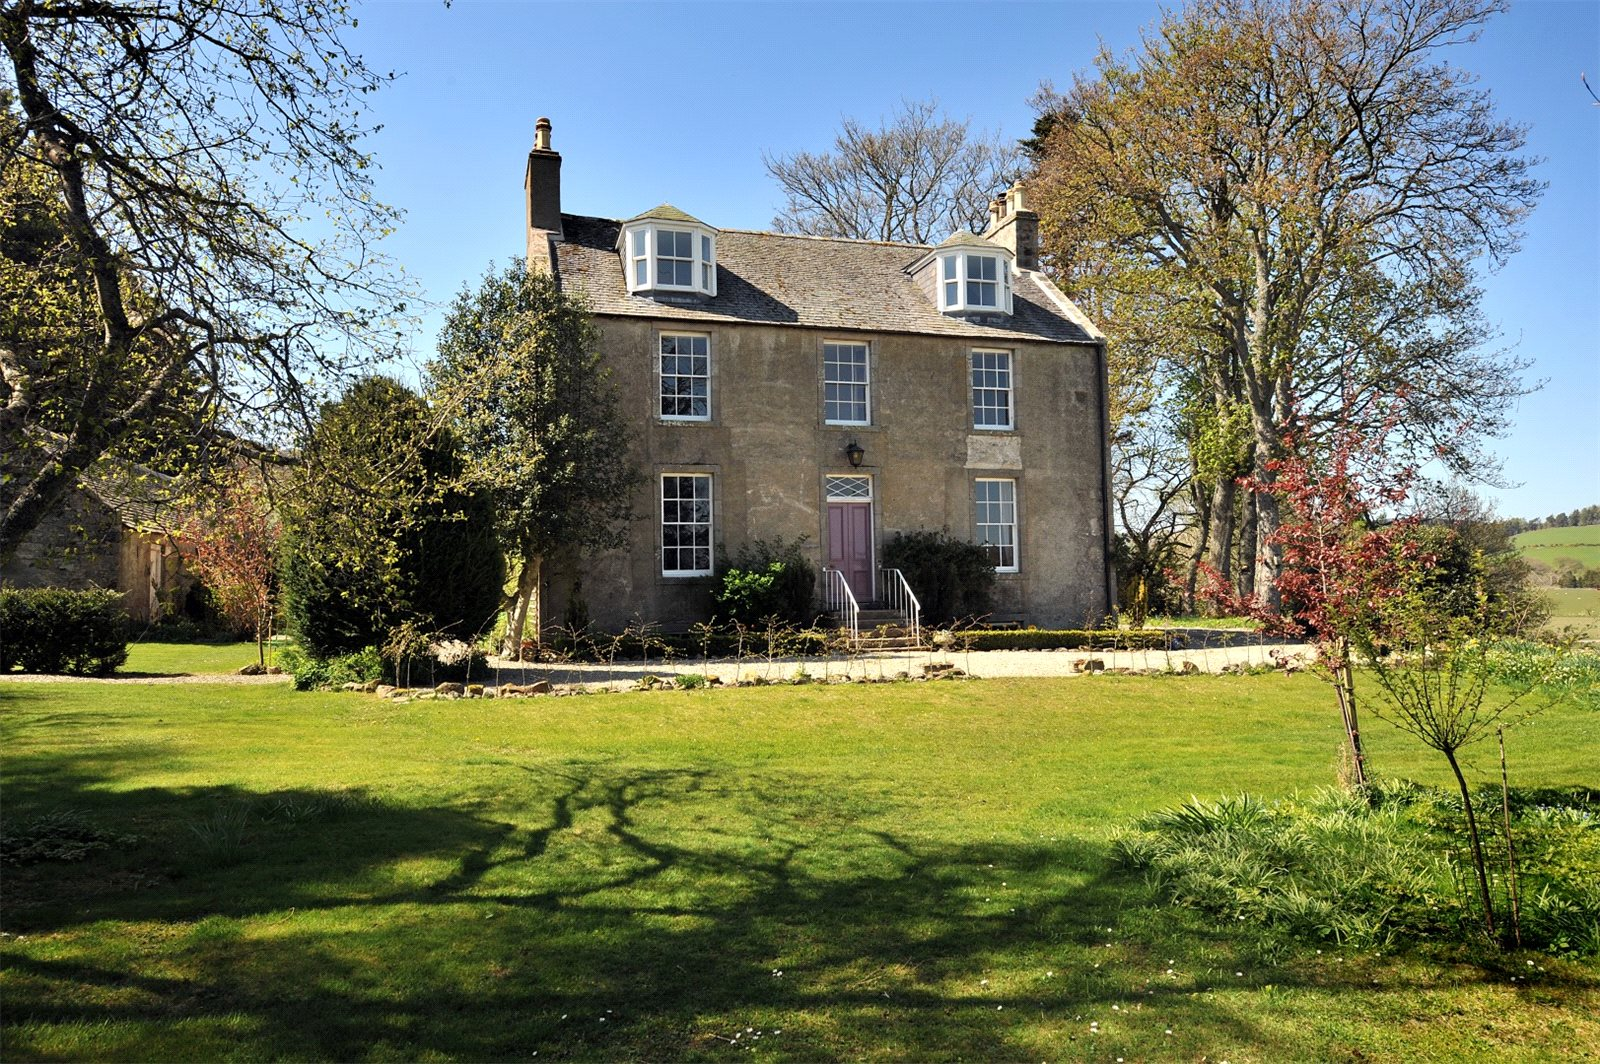 6 Bedrooms Detached House for sale in The Old Manse Of Towie, Glenkindie, Alford, Aberdeenshire, AB33